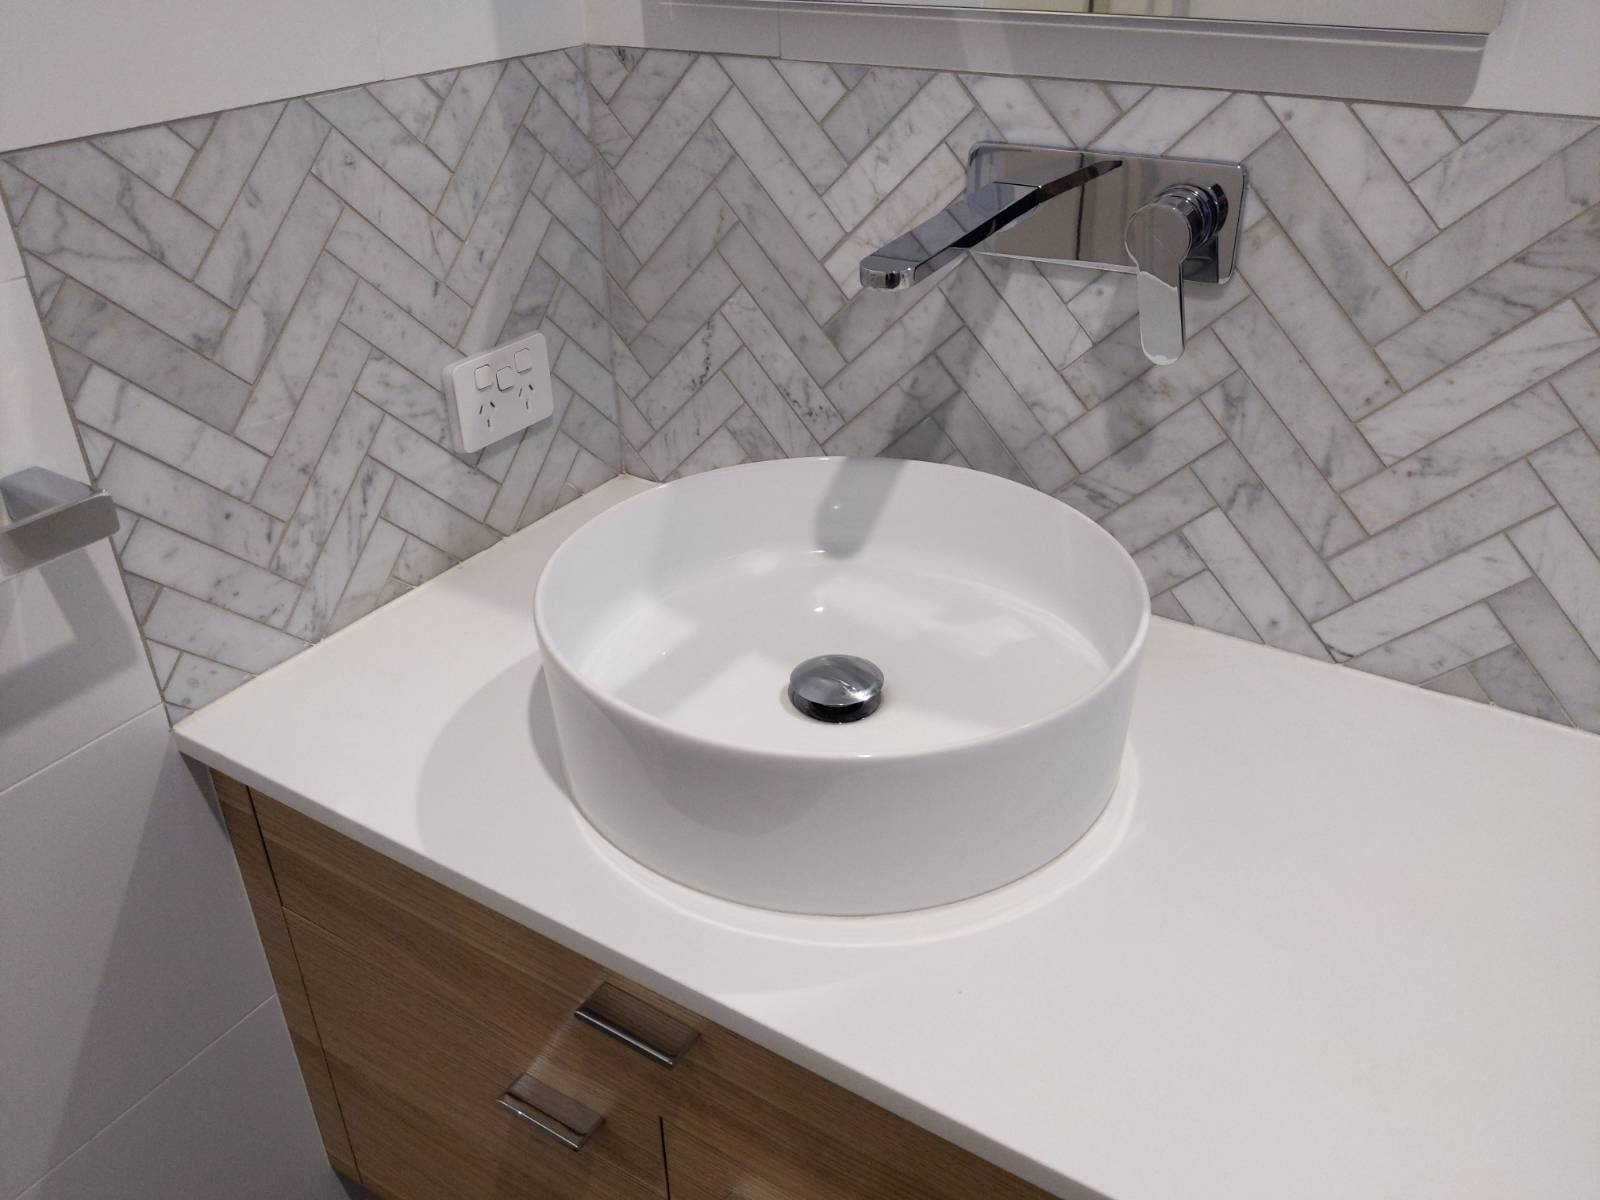 Above bench basin complications